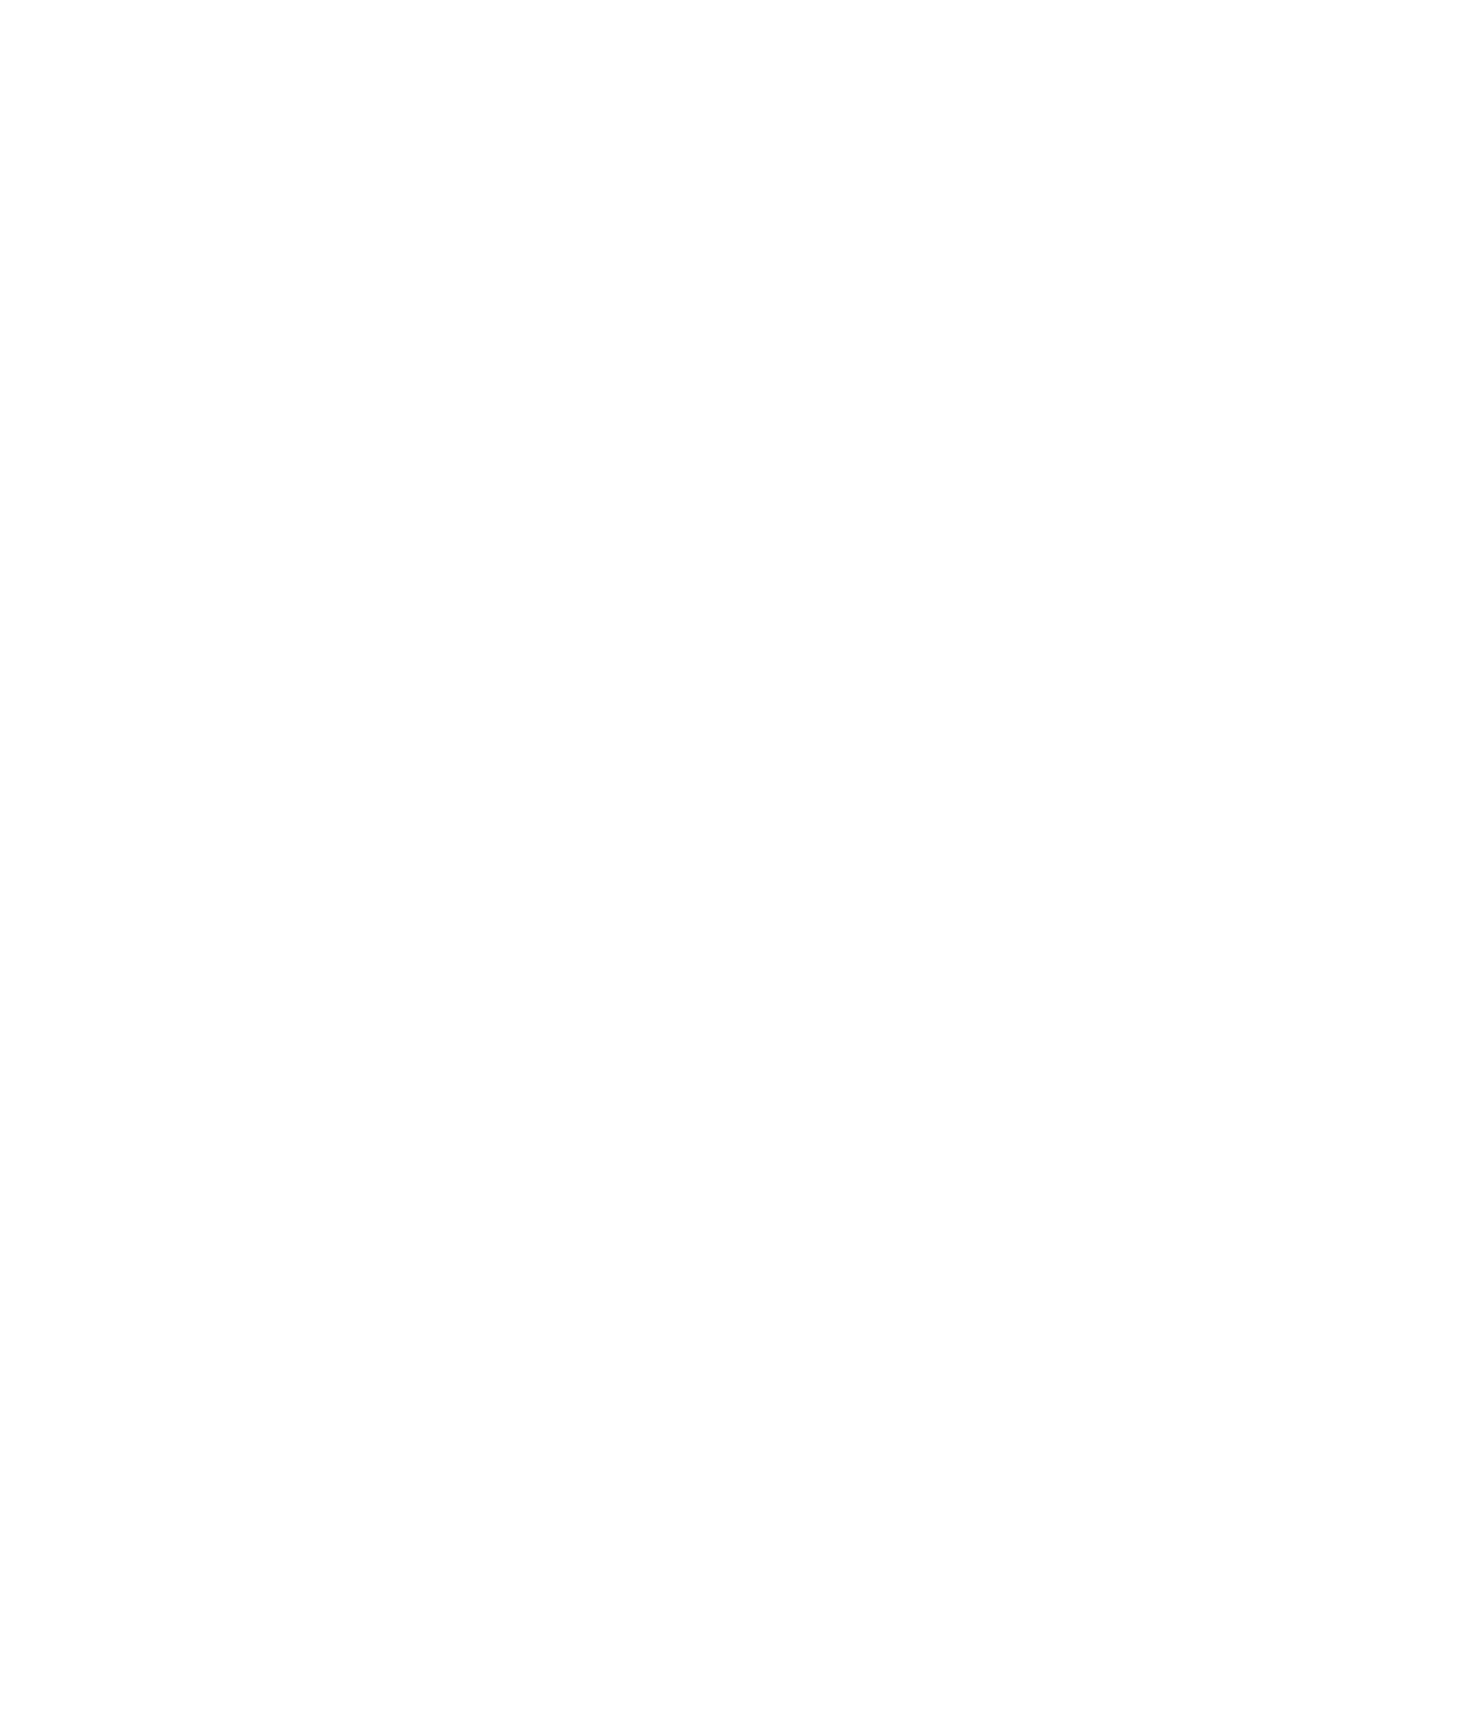 17 STA 2414 Westerly Creek white